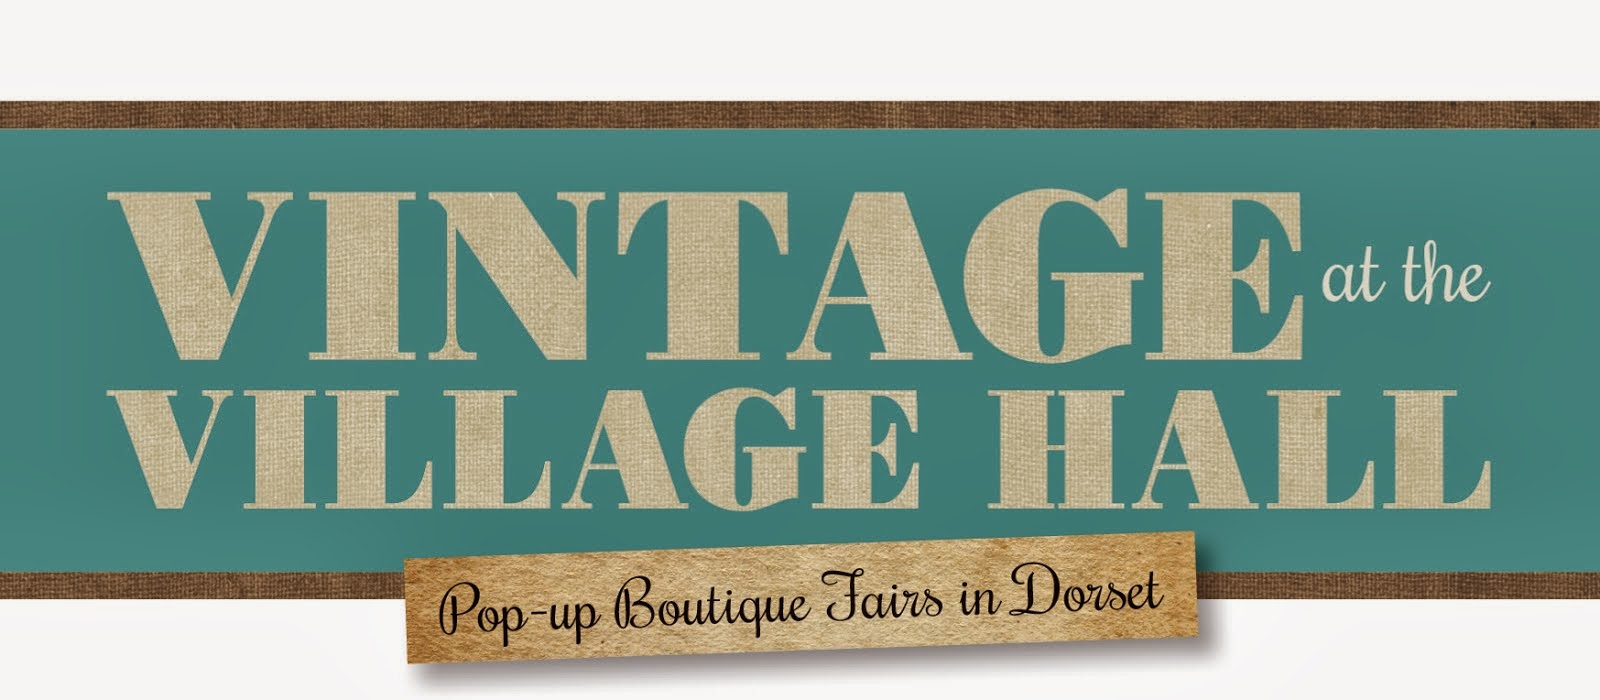 NEW DATE FOR 2014! vintage at the village hall